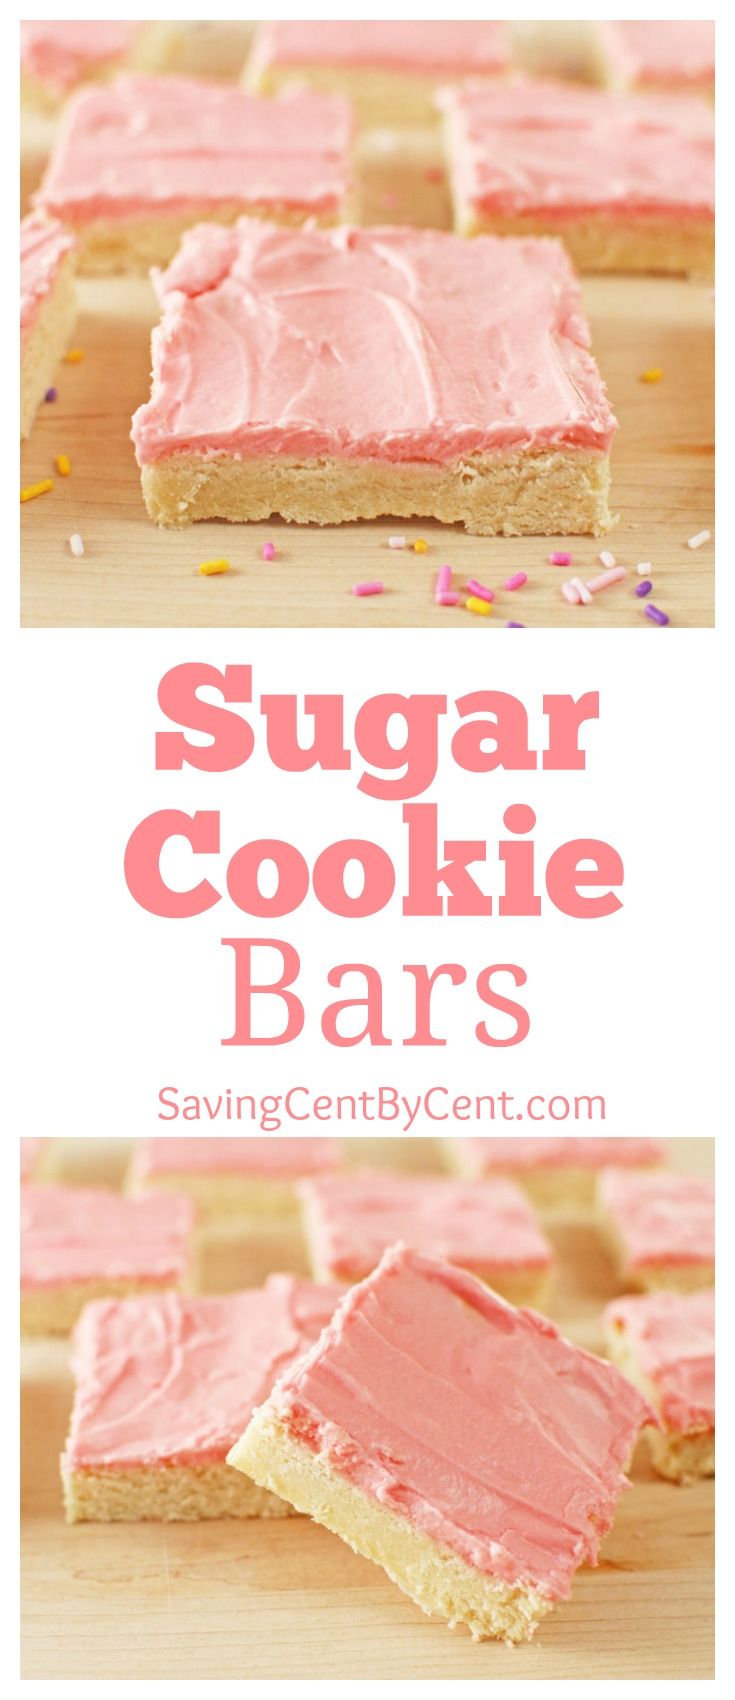 Sugar Cookie Bars on board with sprinkles